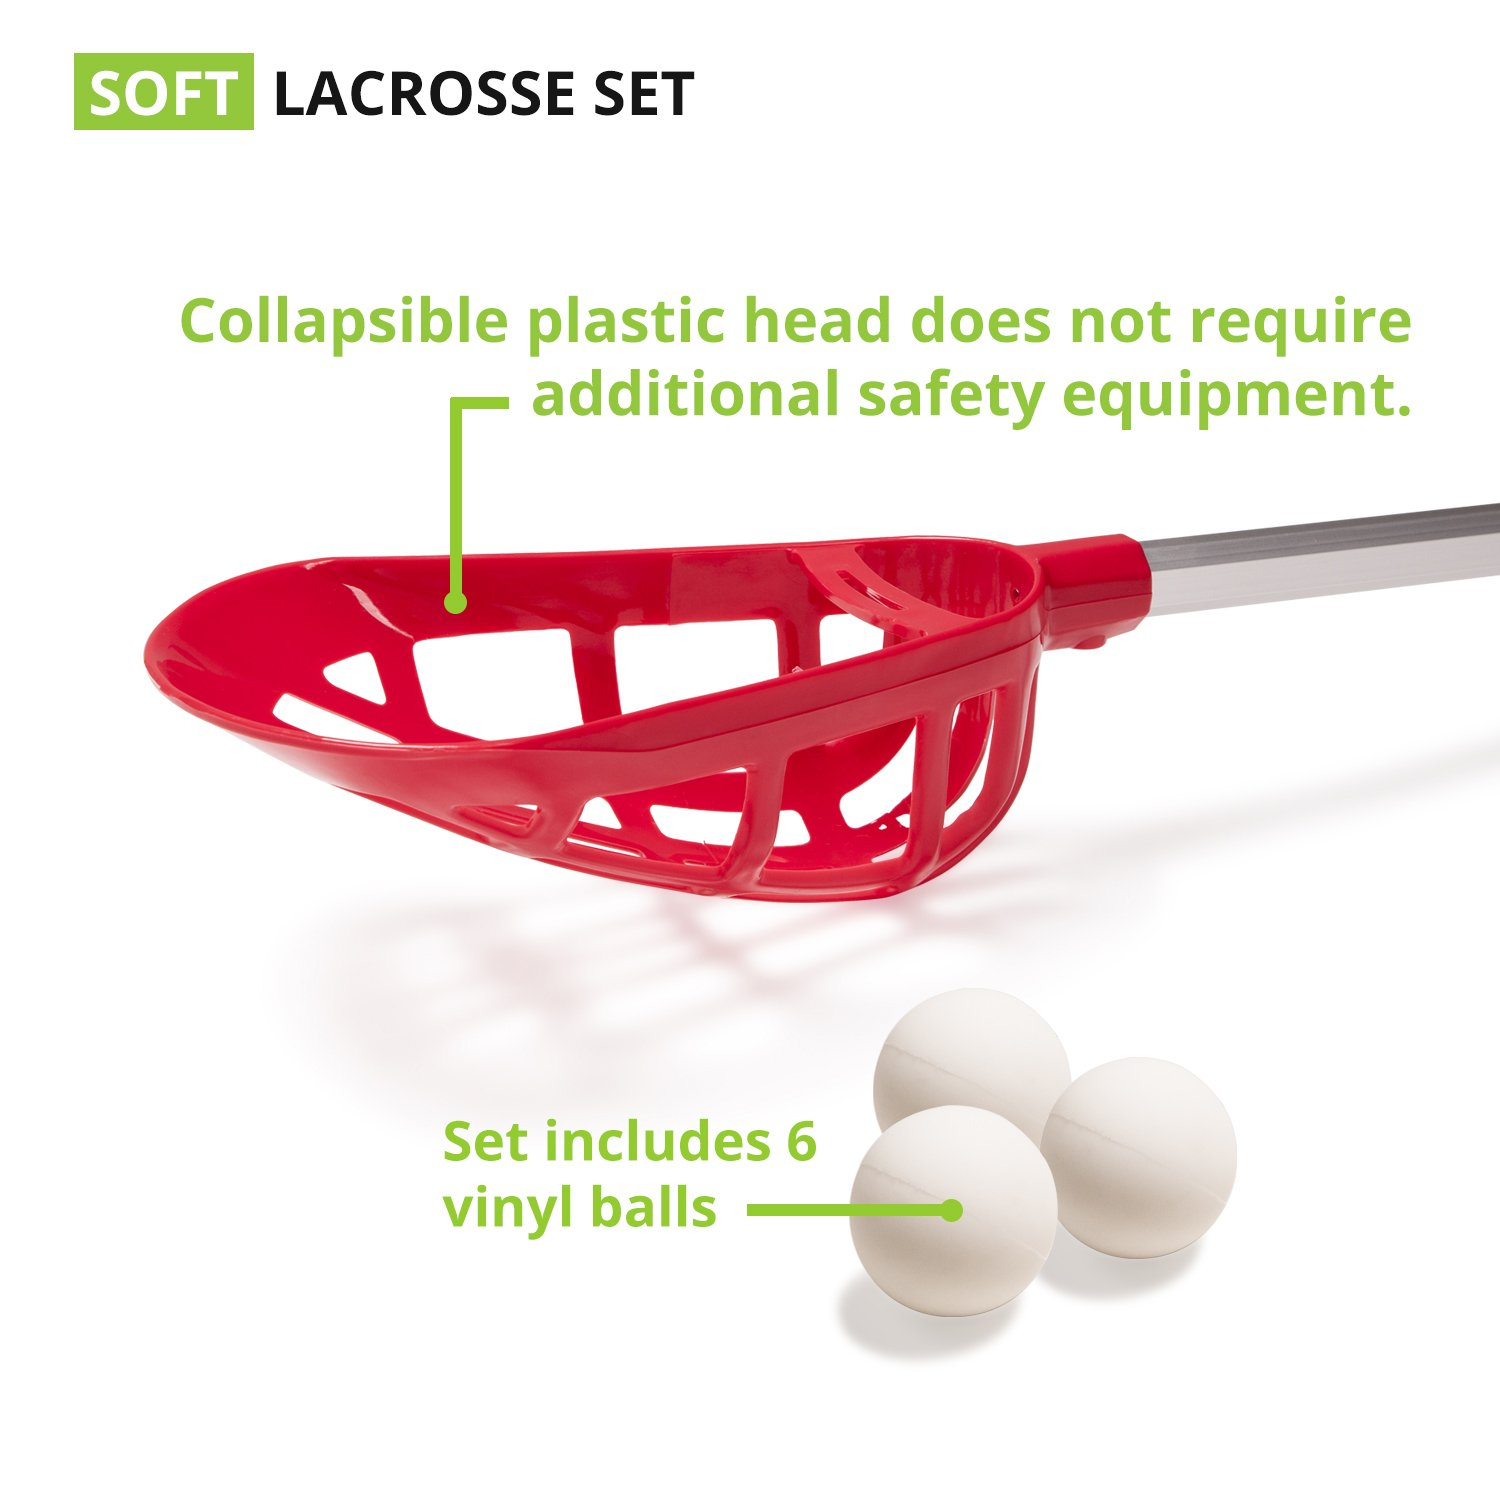 Champion Sports Soft Lacrosse Set: Training Equipment for Boys, Girls, Kids, Youth and Amateur Athletes - 12 Aluminum Sticks and 6 Vinyl Balls for Indoor Outdoor Use by Champion Sports (Image #3)